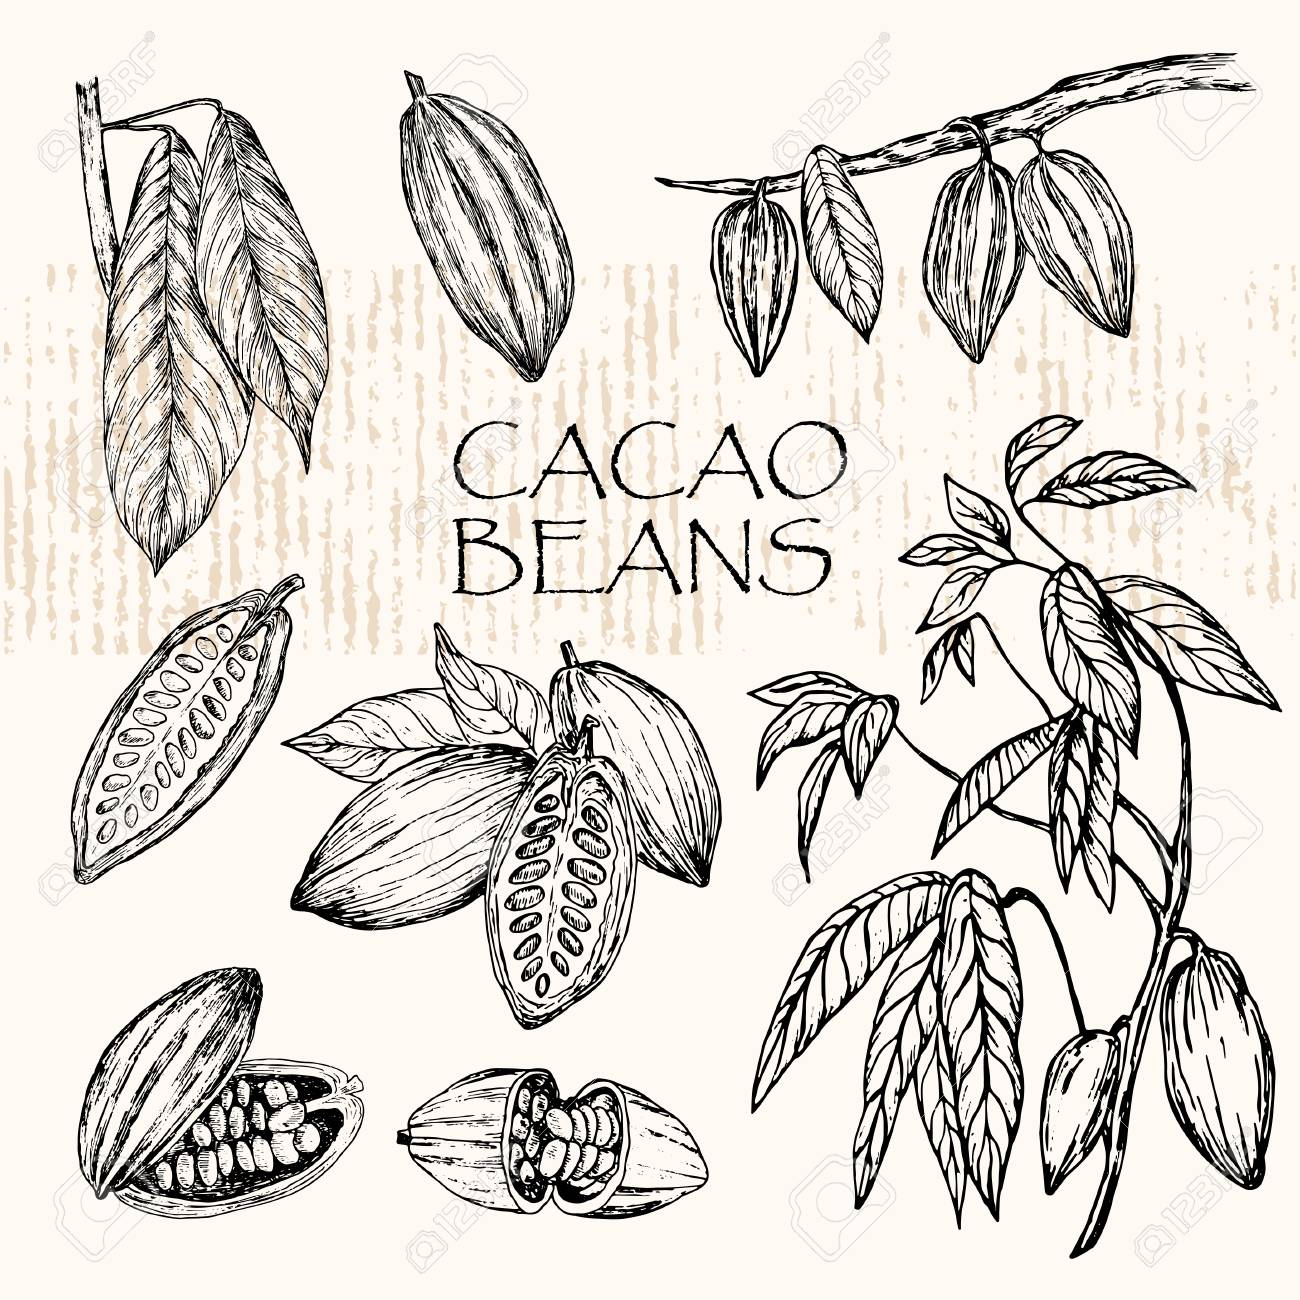 Vector Illustration Sketched Hand Drawn Cacao Beans Cacao Tree Royalty Free Cliparts Vectors And Stock Illustration Image 85956144